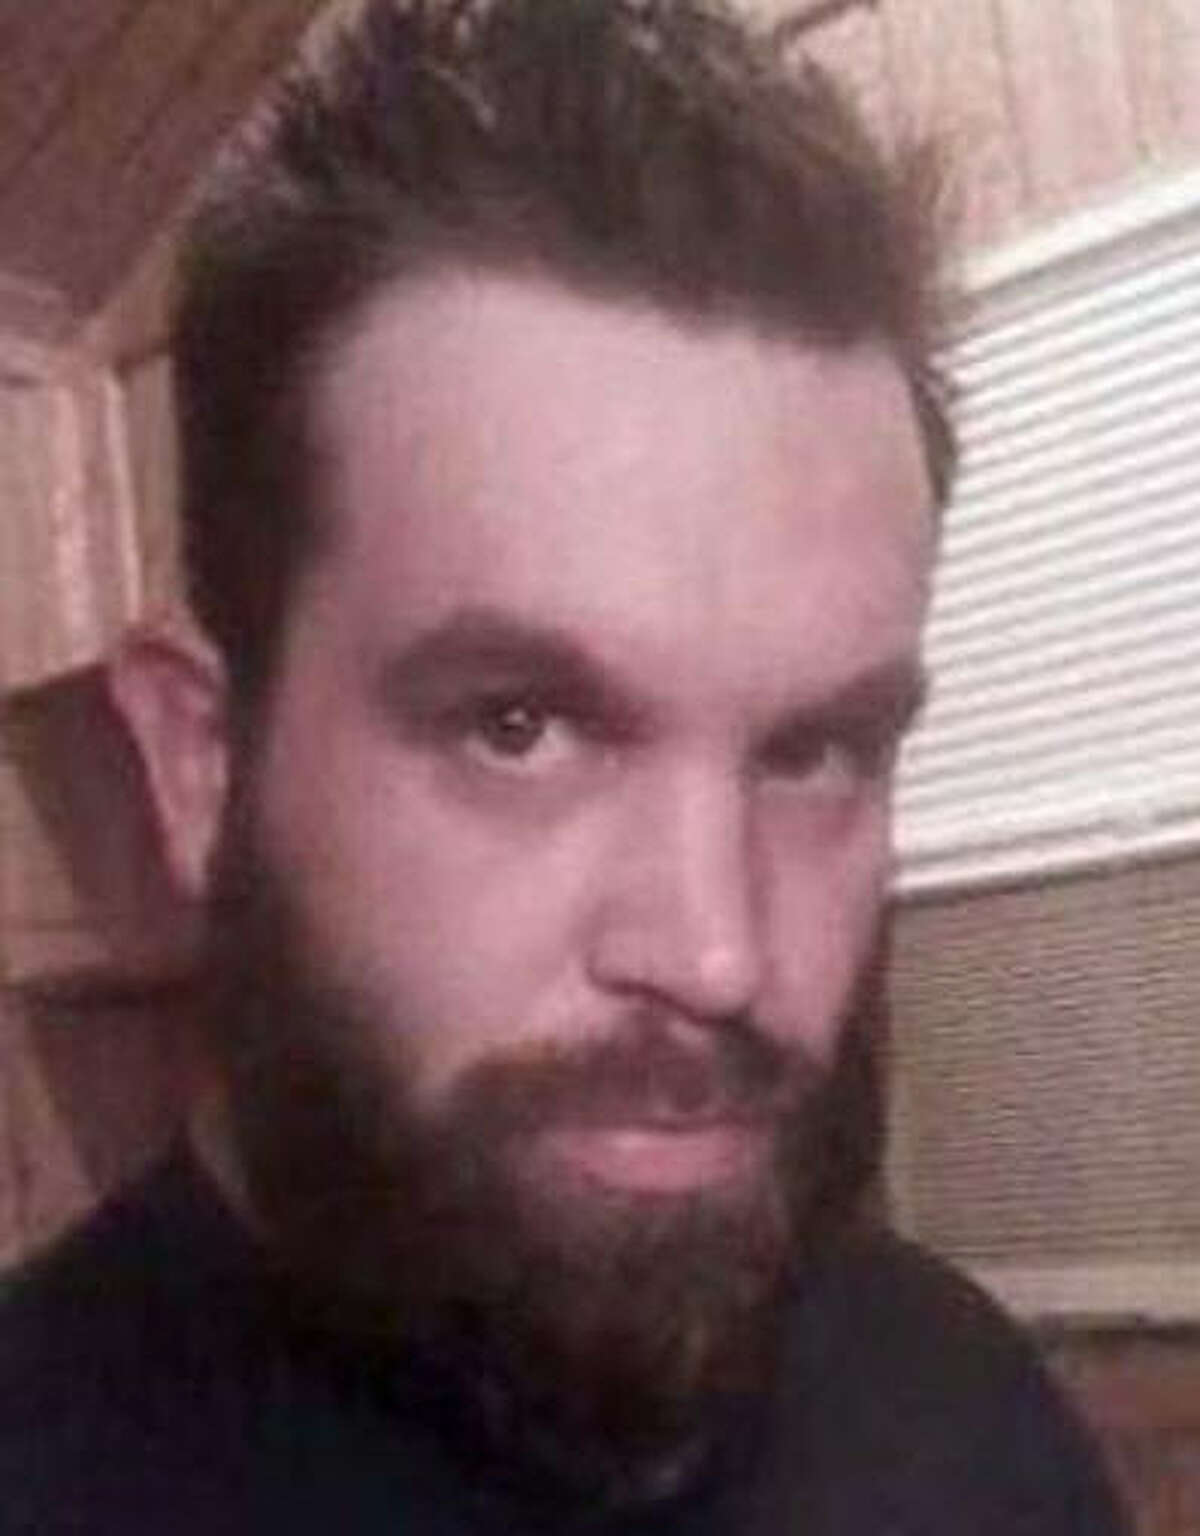 Where are you? Hill County, Texas sheriff's investigators say they are taking a fresh look at the disappearance of 30-year-old John Terry, who was last seen leaving a Wal-Mart in Hillsboro in October 2014. His truck was recovered, but there was no sign of him.